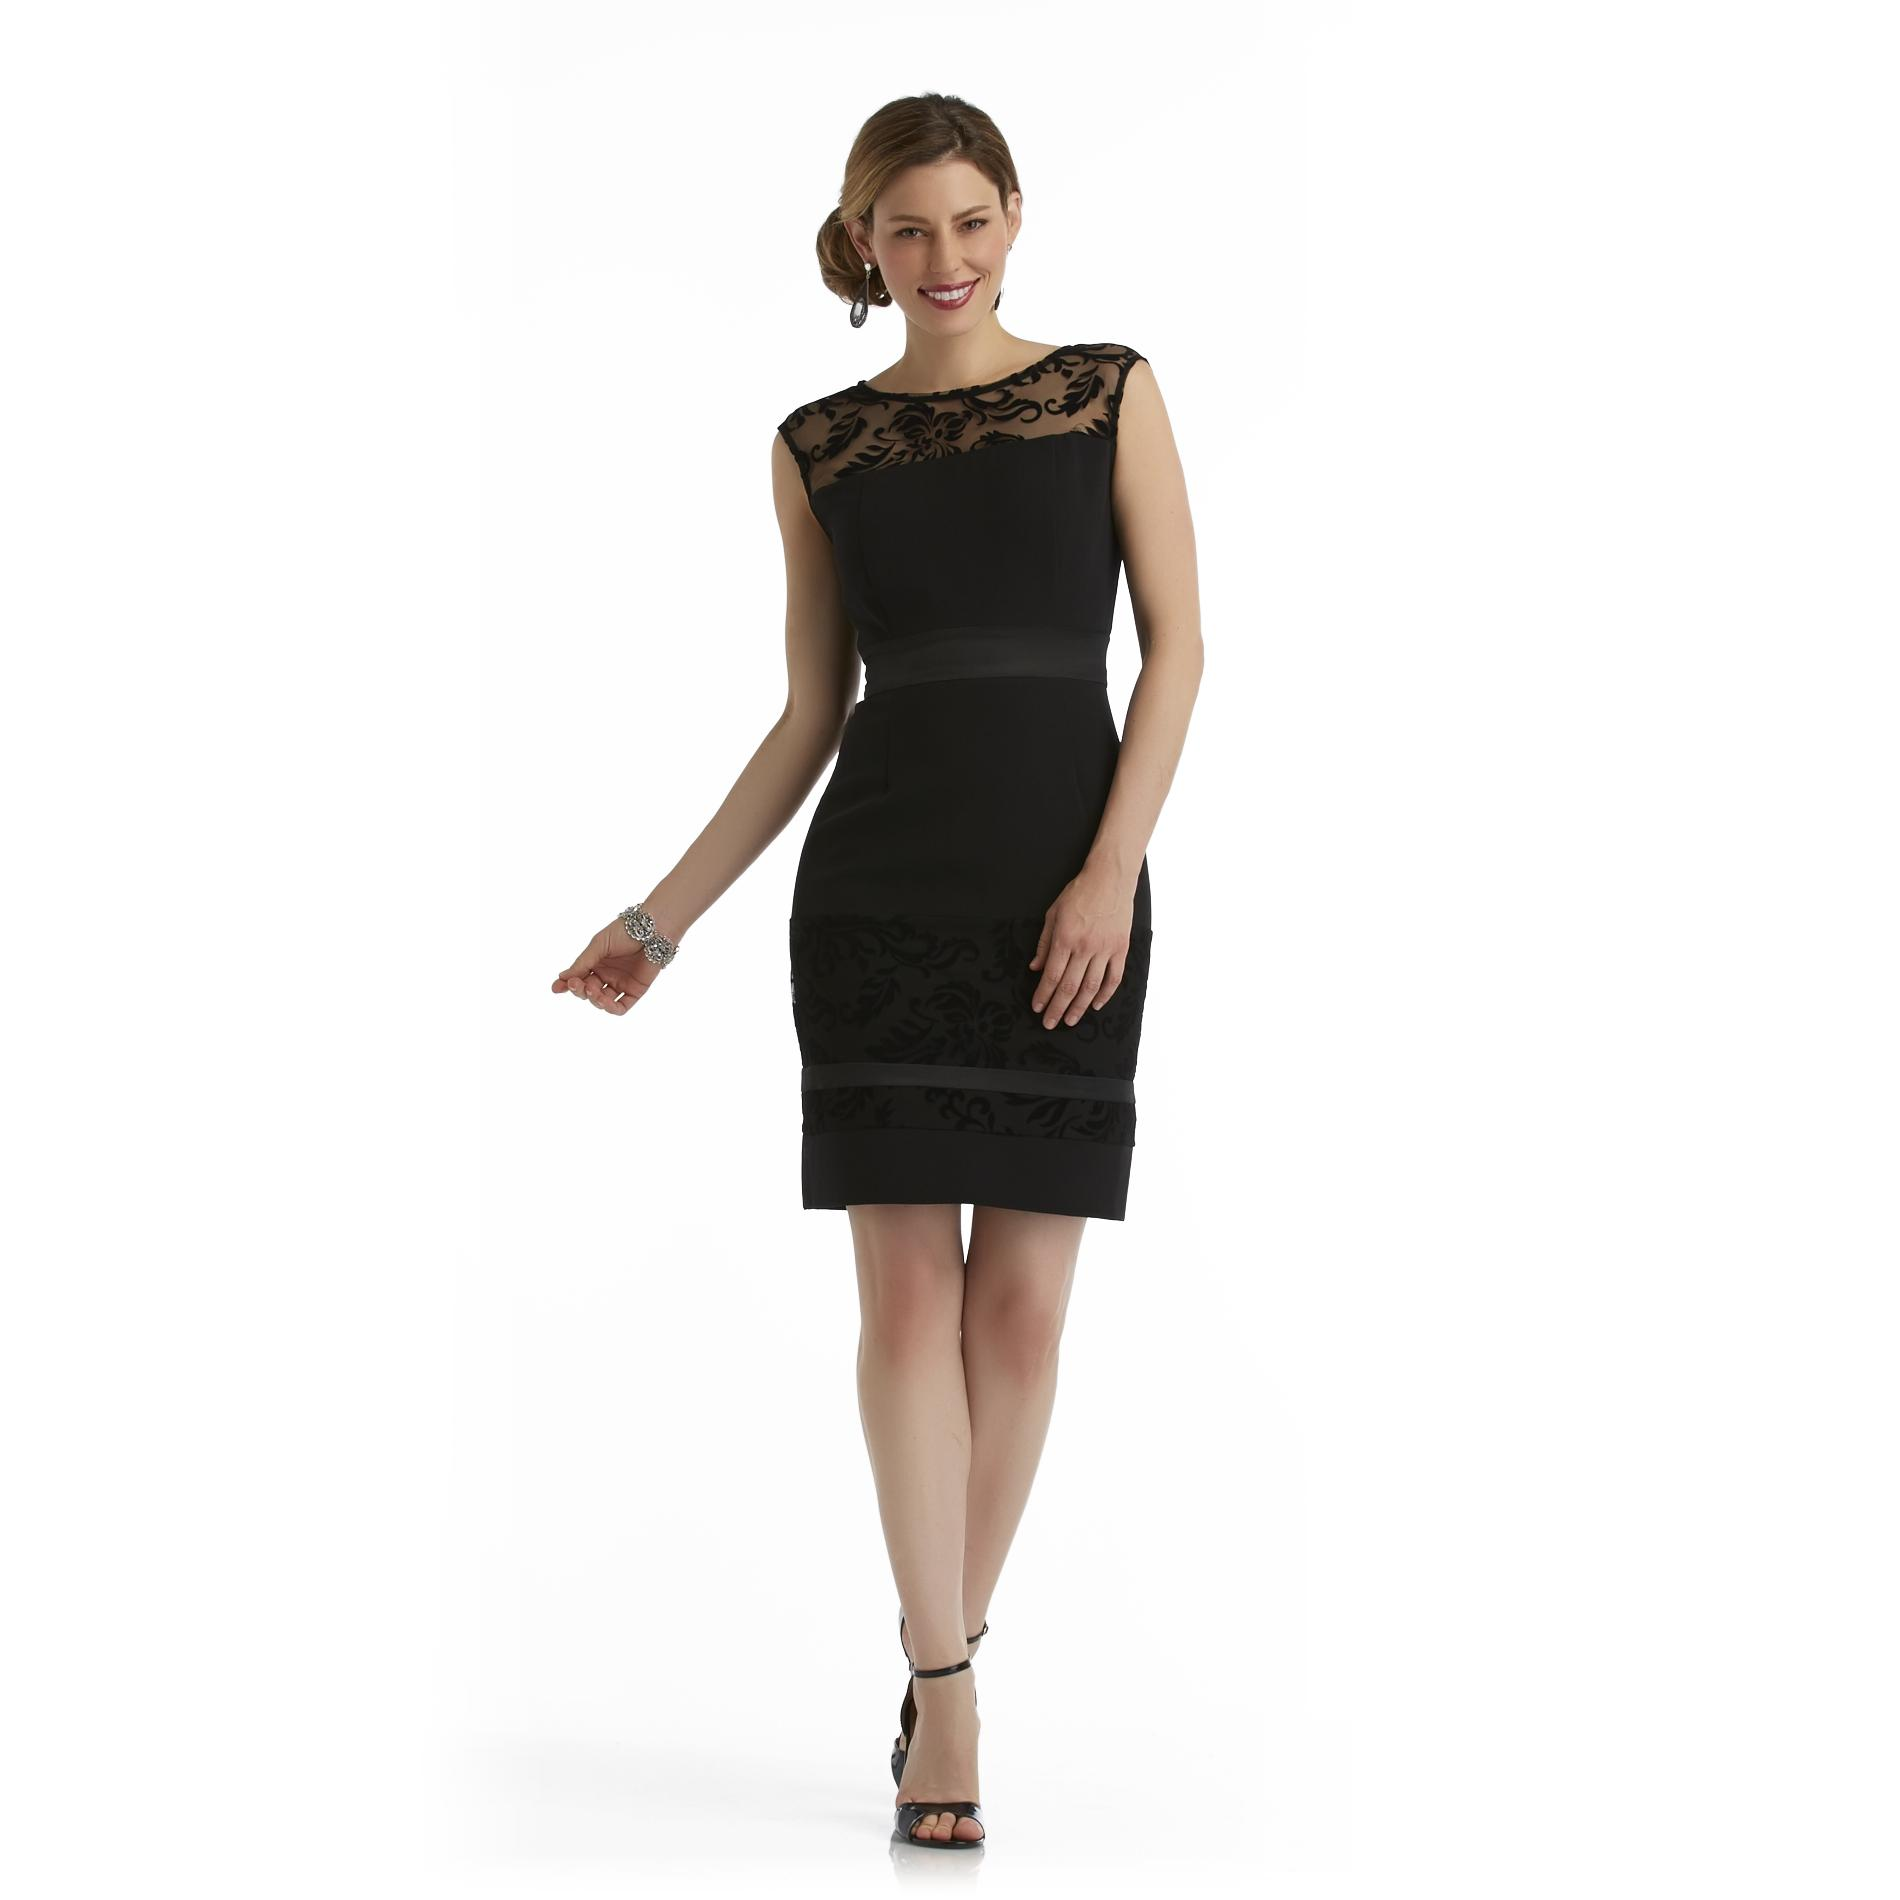 Studio 1 Women's Sheath Dress at Sears.com